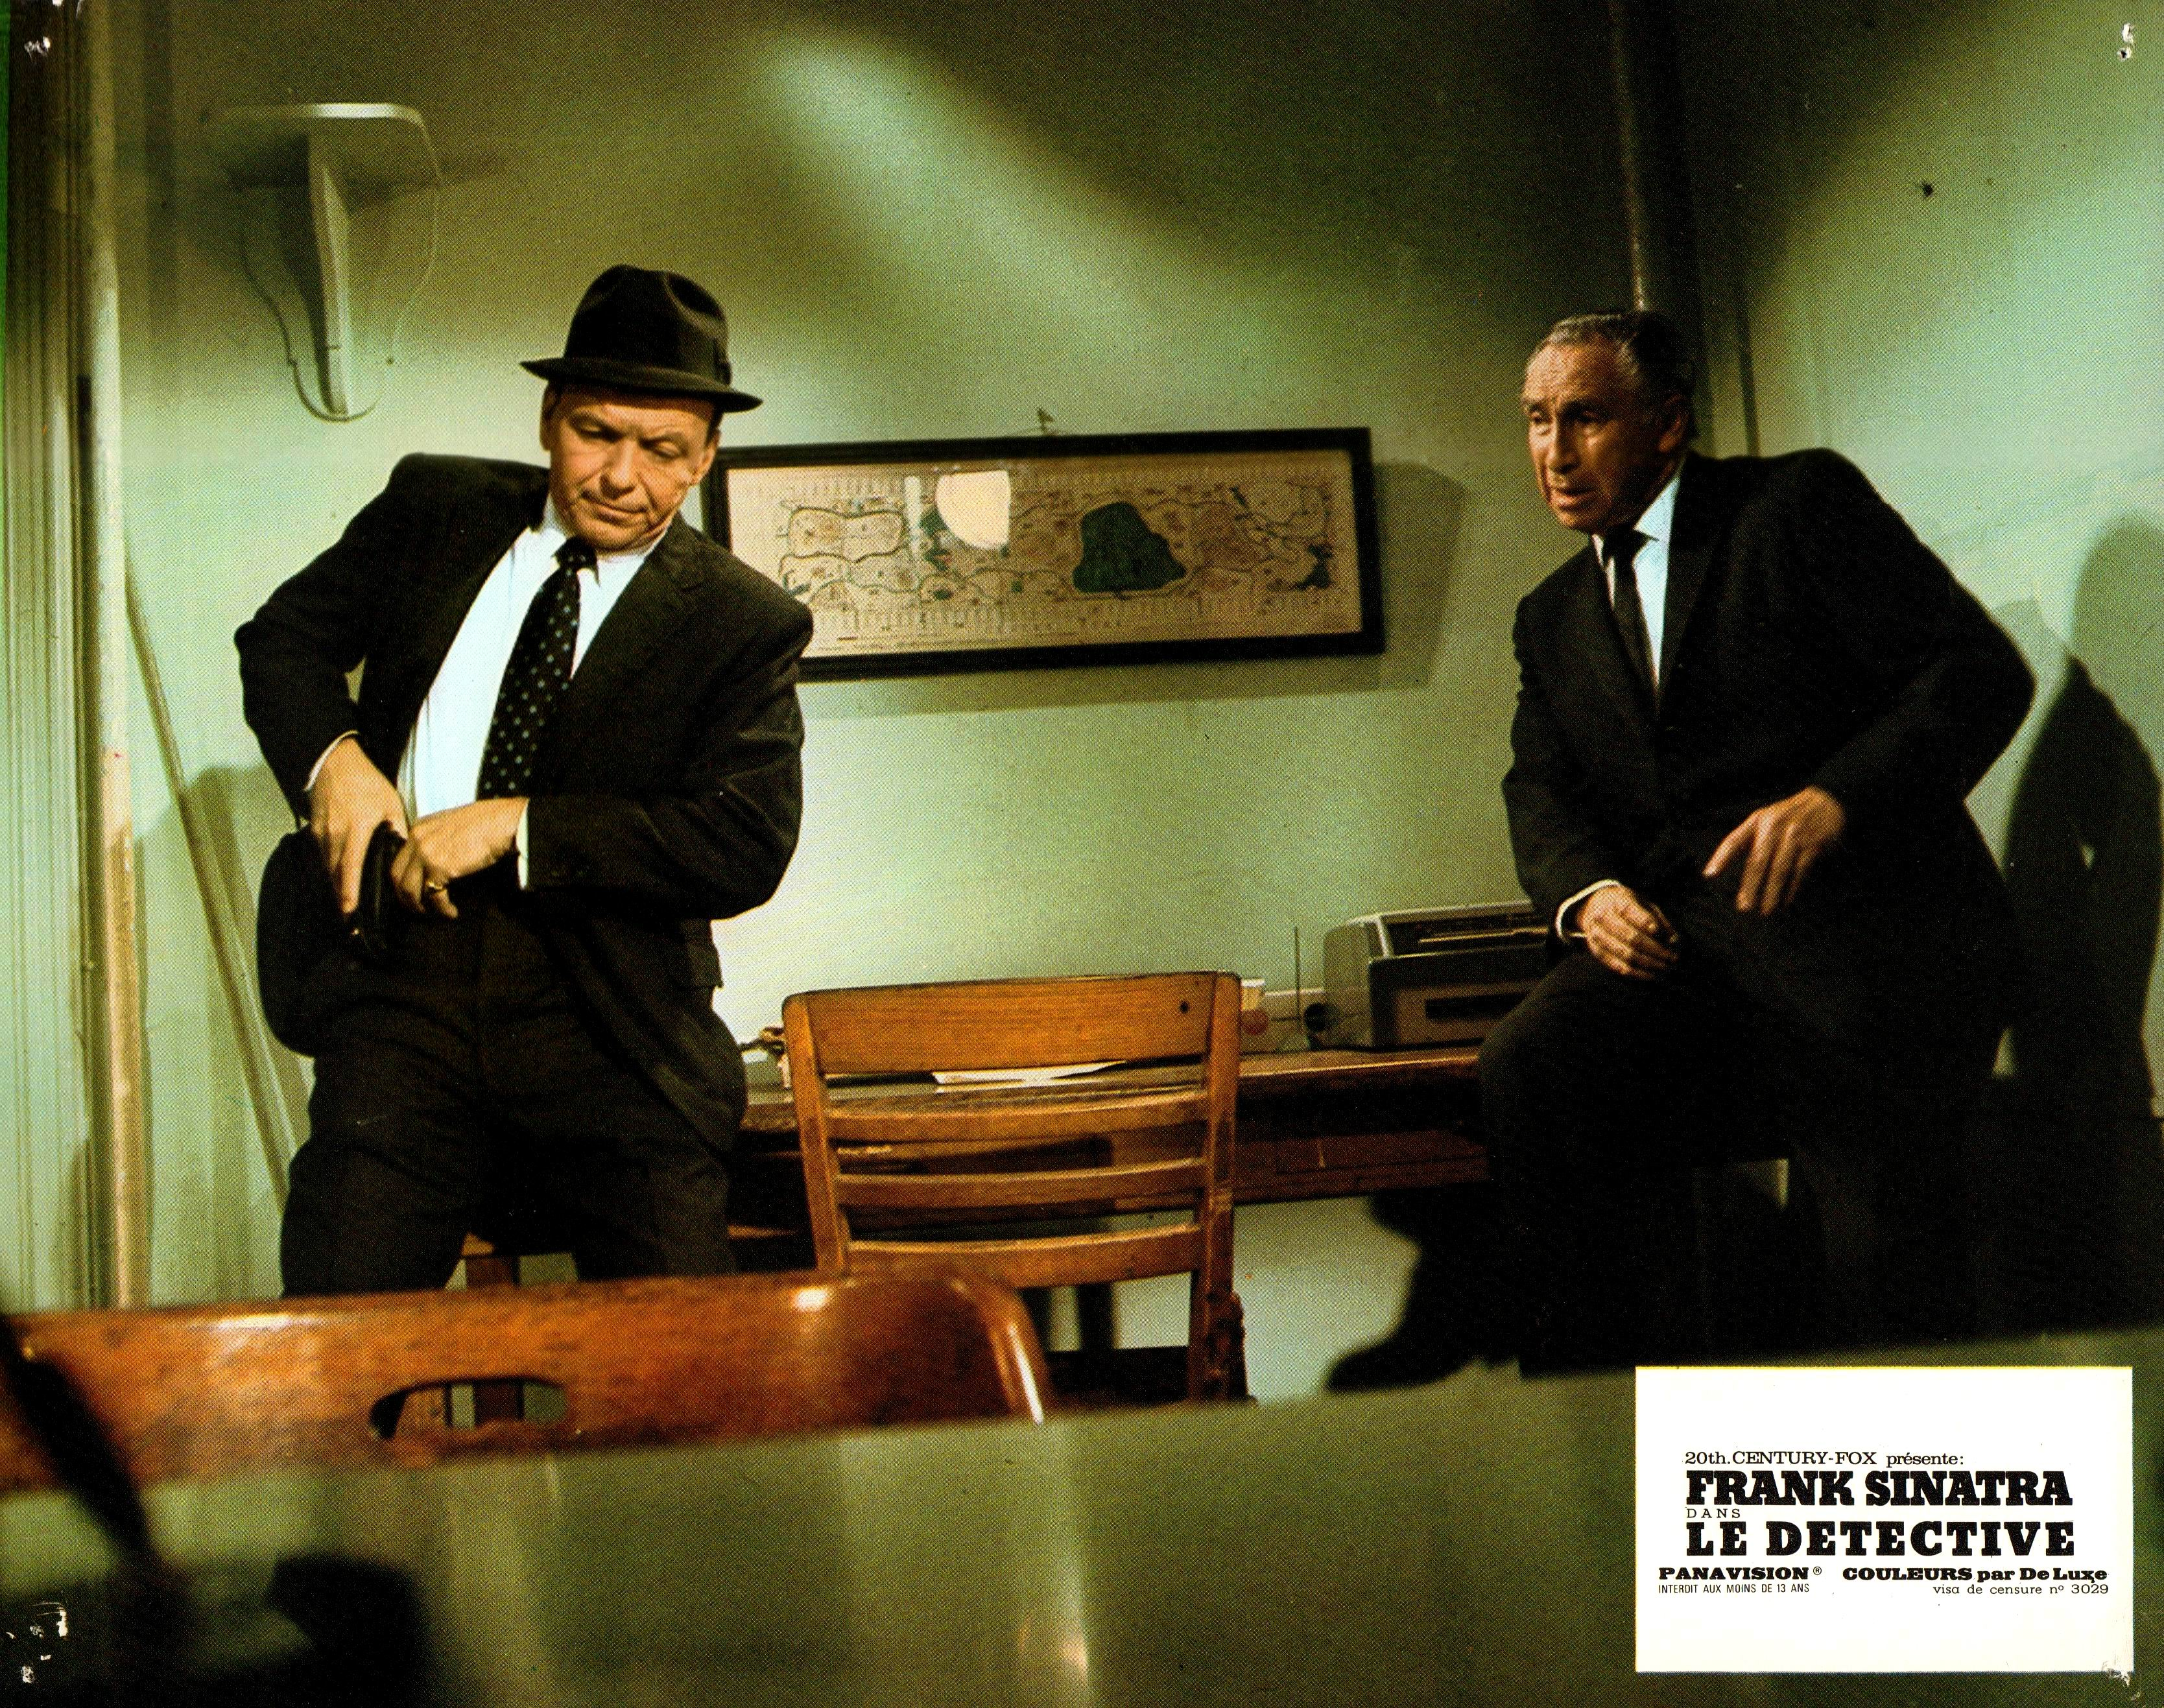 Frank Sinatra and Horace McMahon in The Detective (1968)